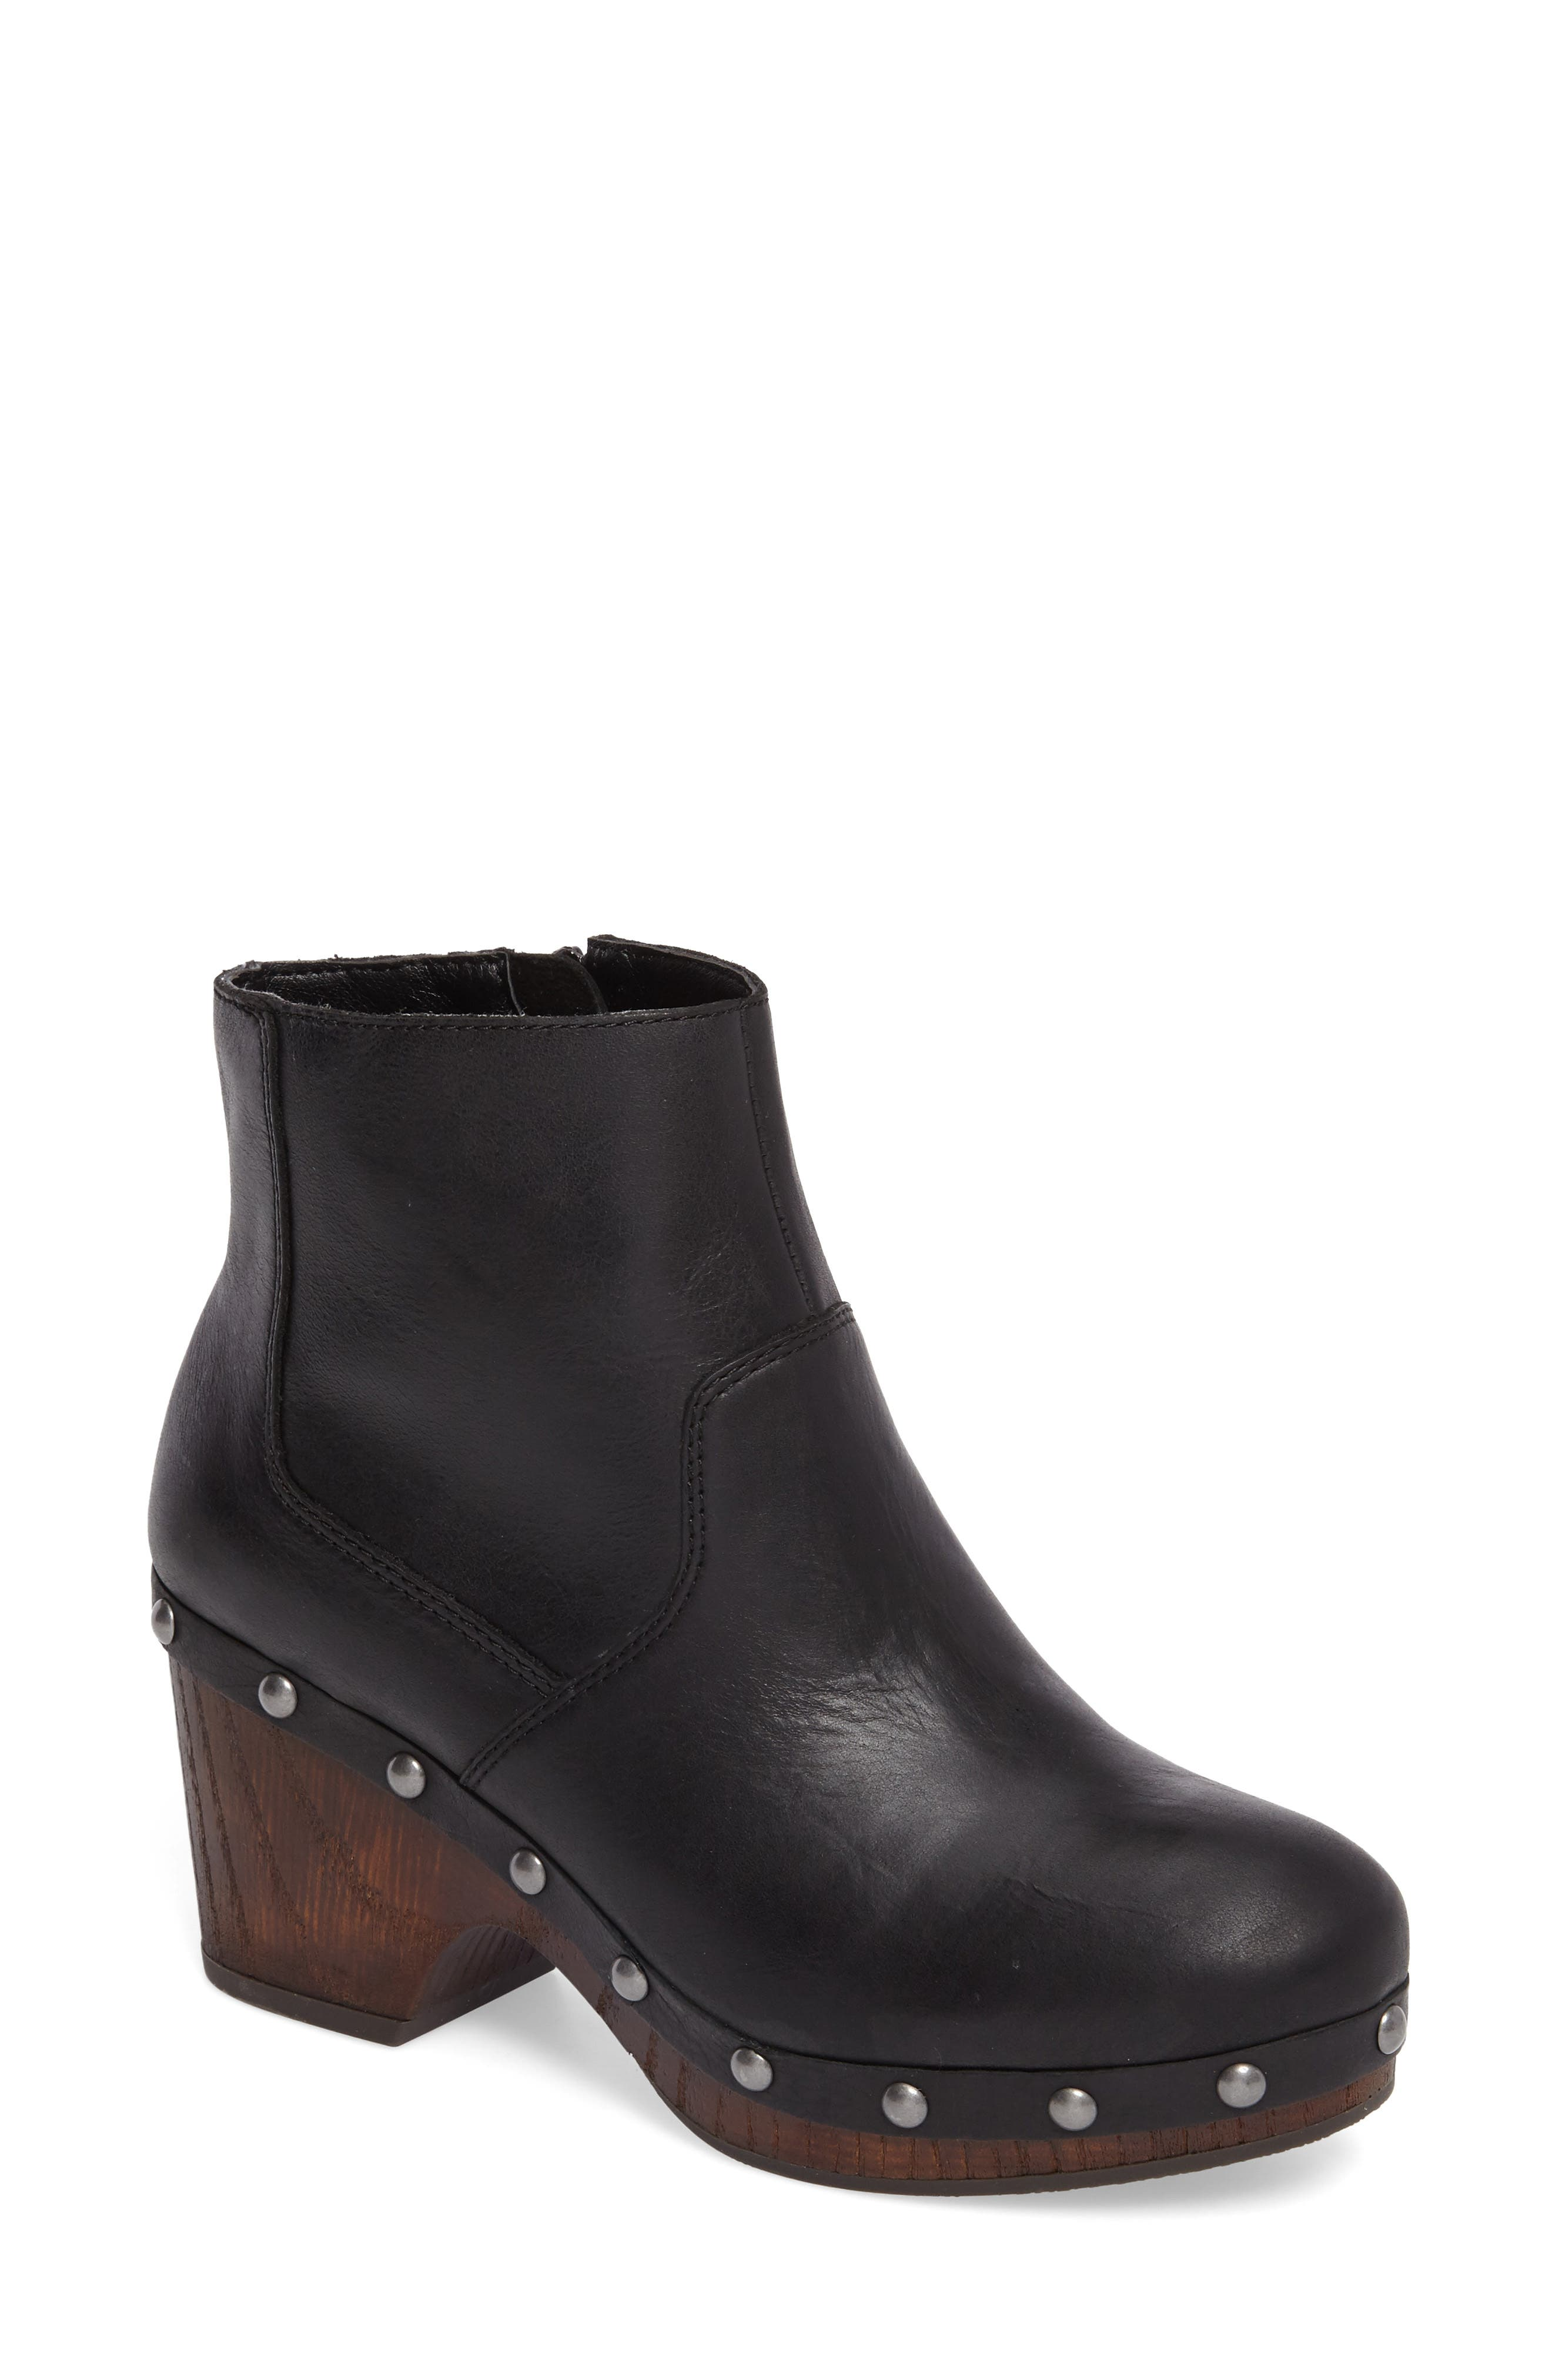 Yasamin Bootie,                         Main,                         color, Black Leather